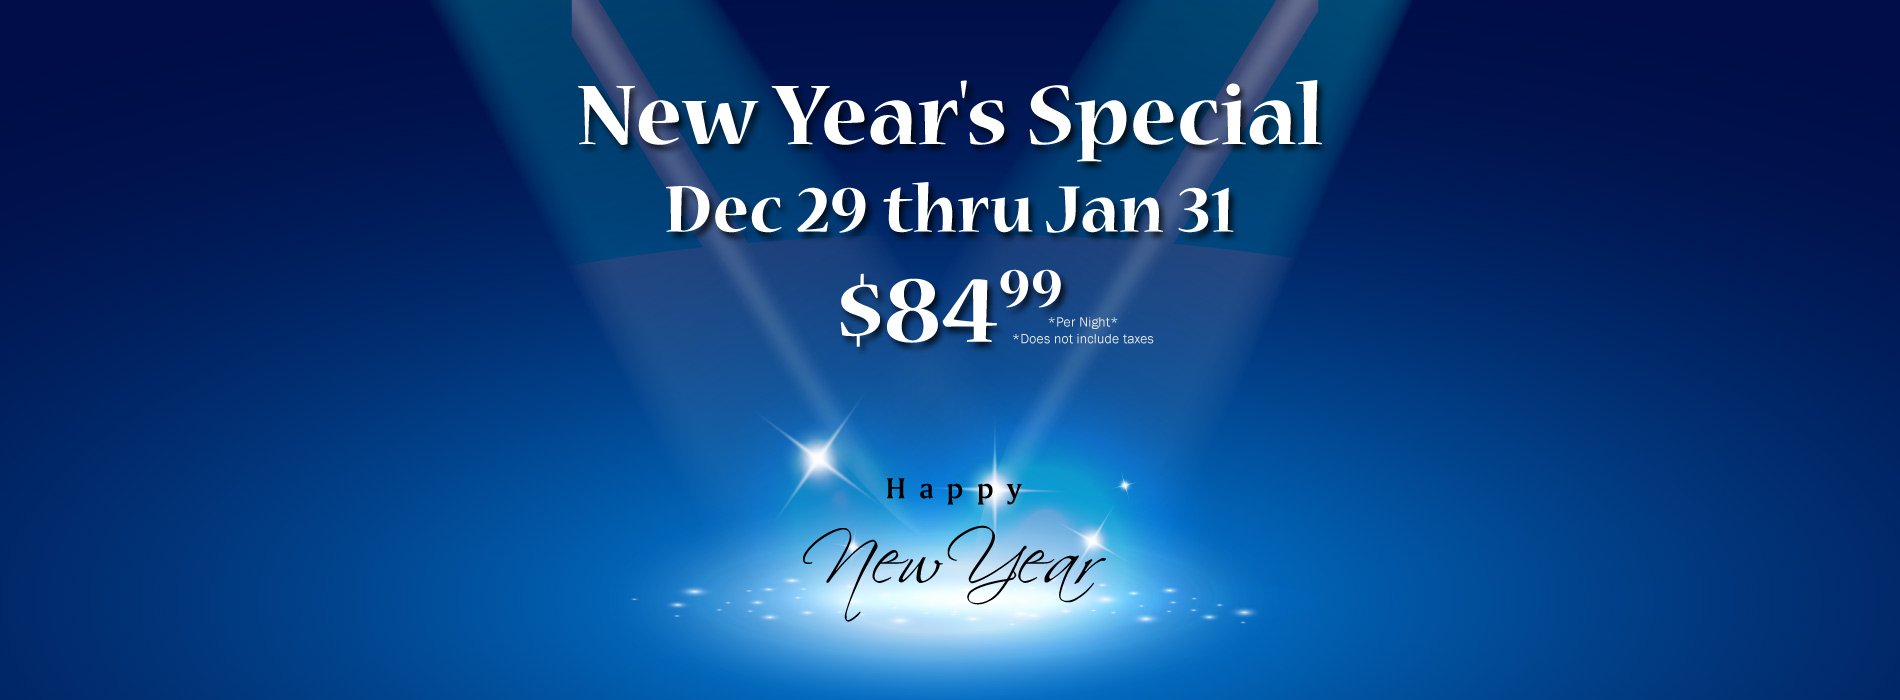 _slider-new-years-special